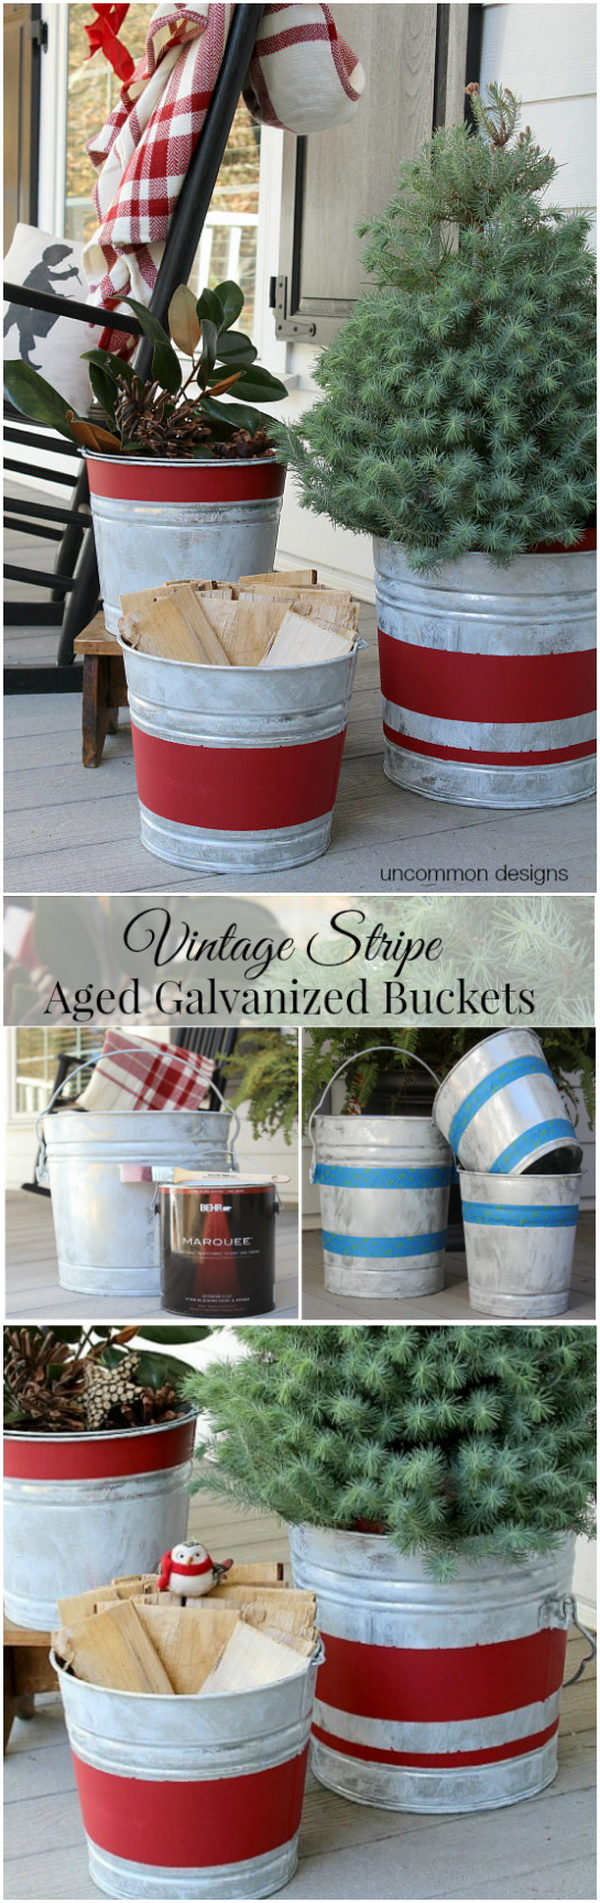 Vintage Striped Galvanized Buckets. This vintage striped galvanized bucket is easy and fun to make. Distress a bucket or two from most flea markets and create a red stripe by painting or use red duct tape or red burlap as you like. Then just add greenery, candles, or whatever you want to give it a festive look. It speaks much for your country Christmas decorating!